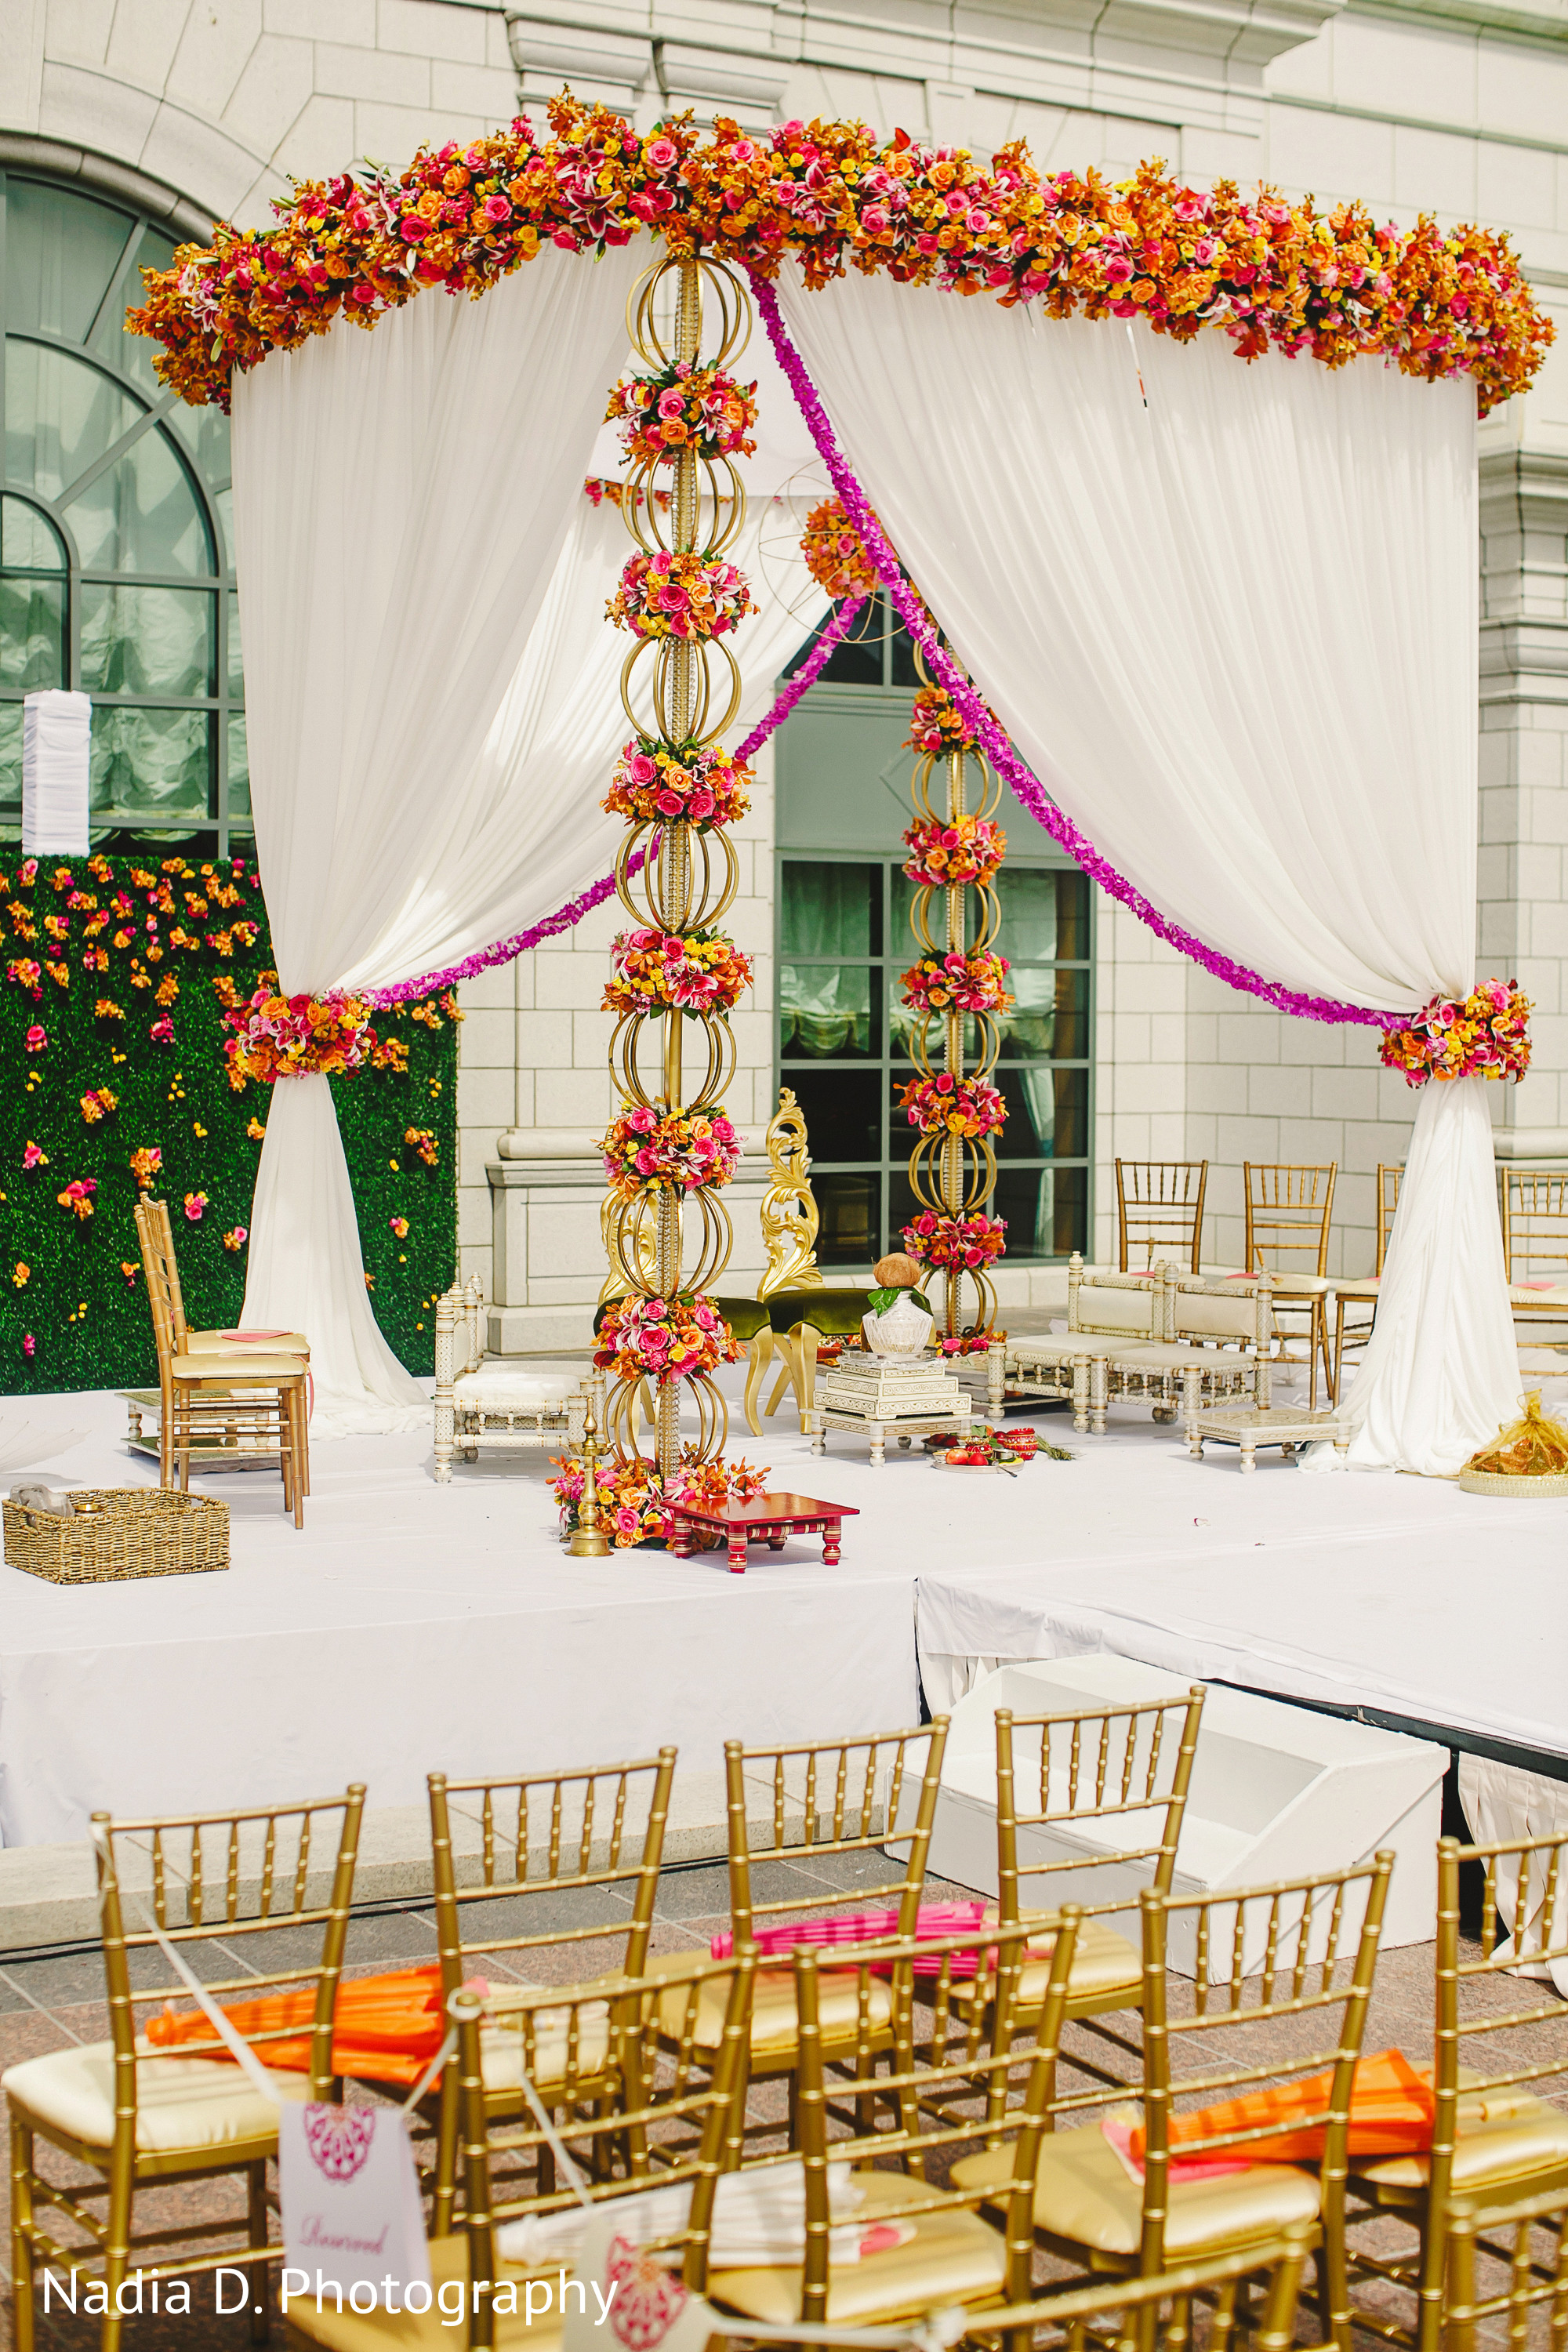 Floral decor in salt lake city ut indian wedding by for Home decor ideas for indian wedding